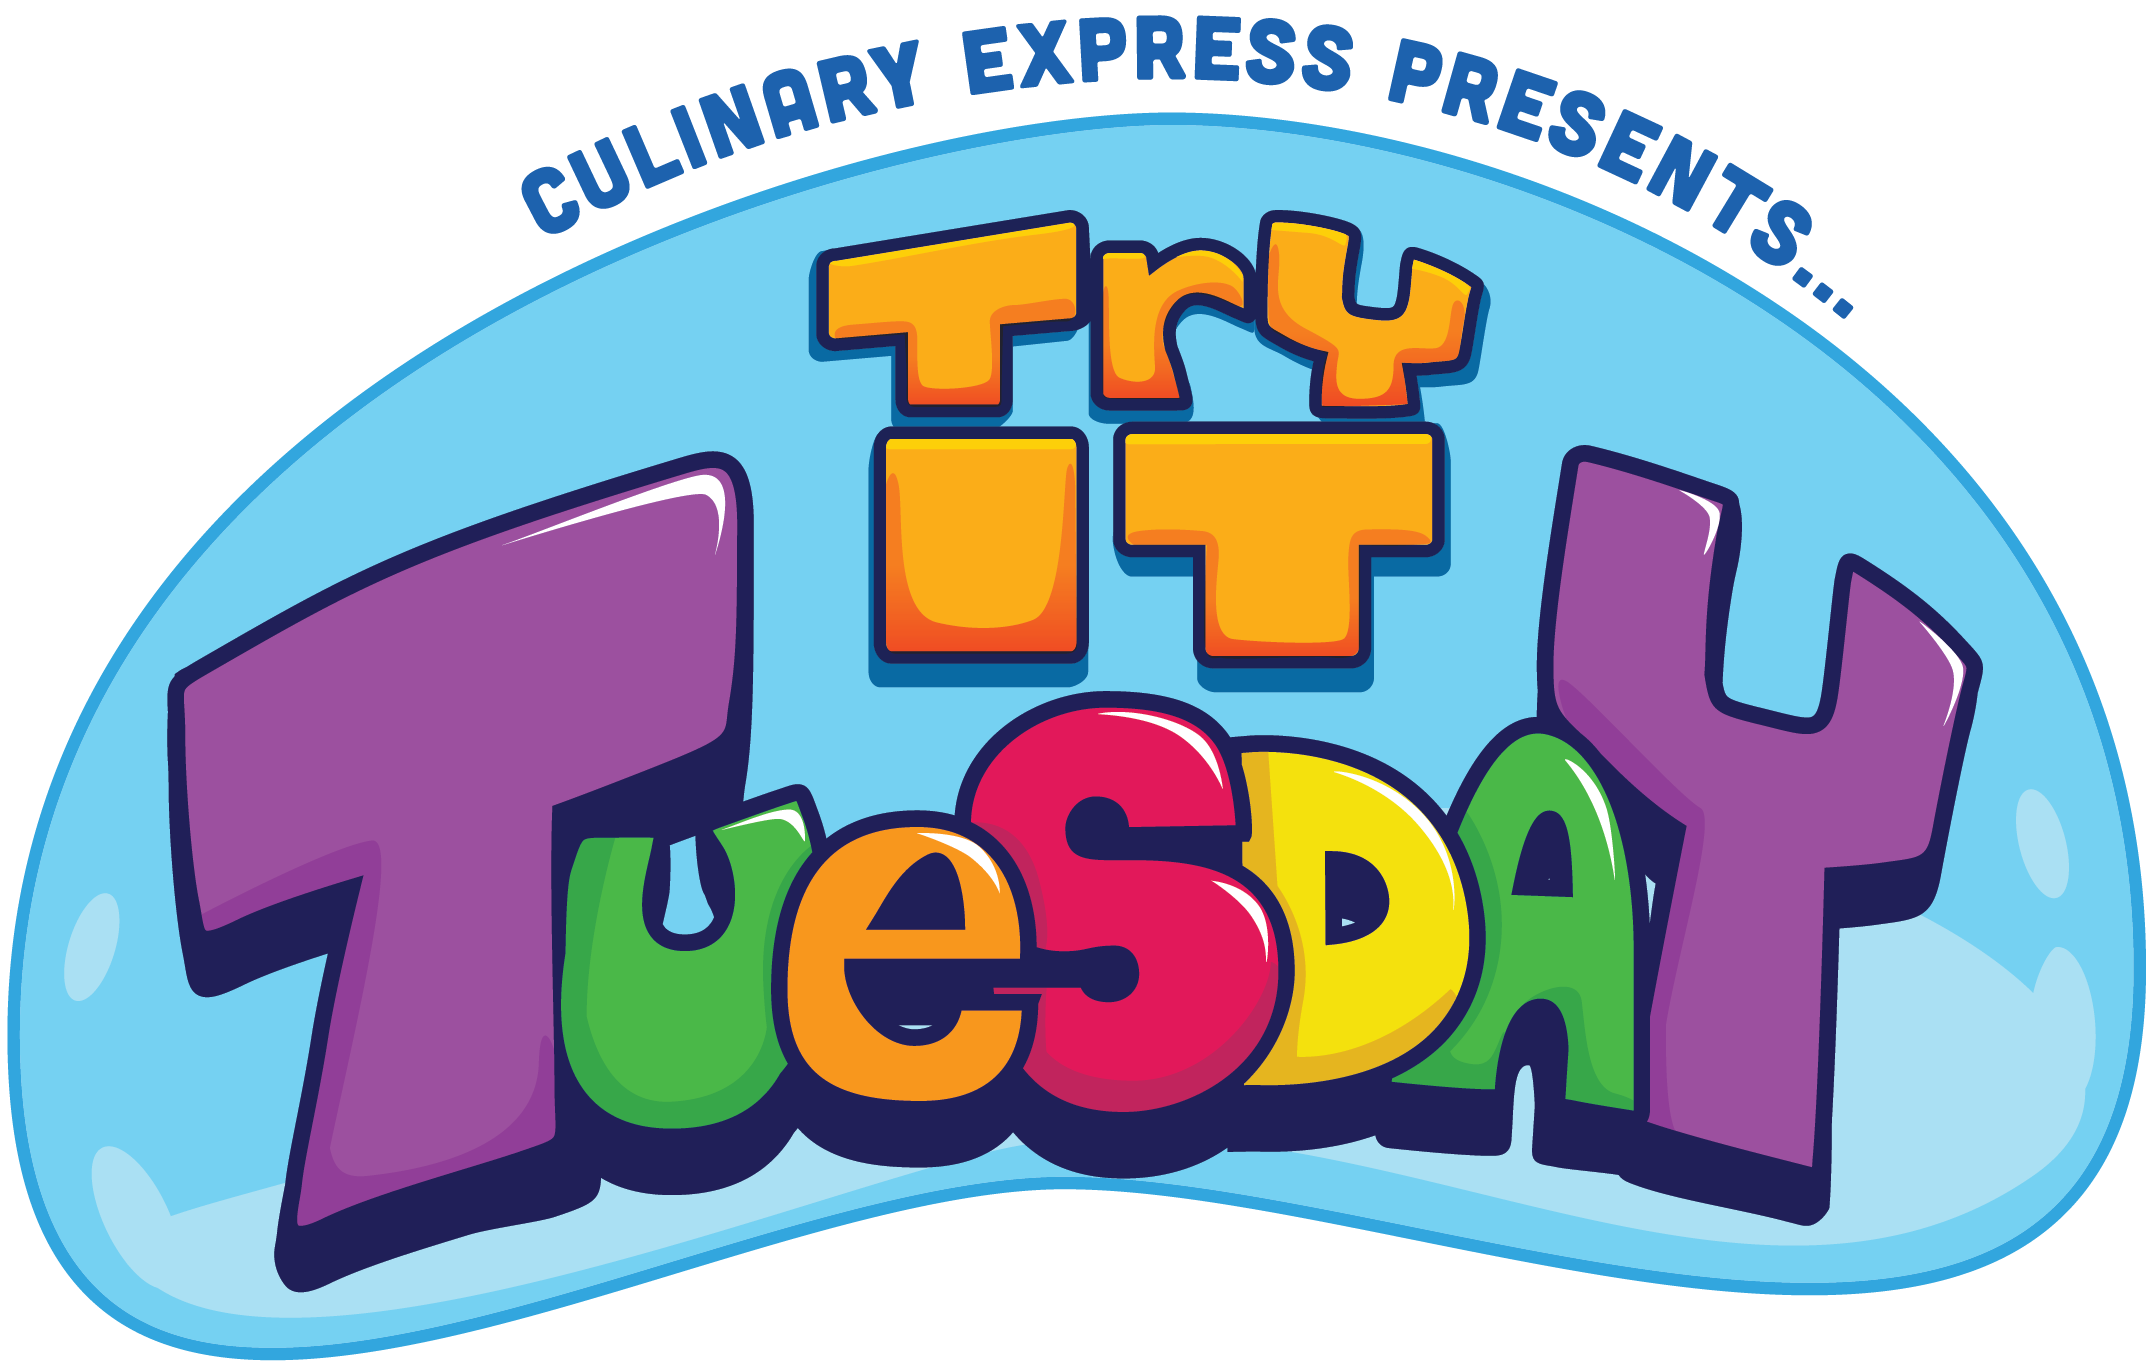 Culinary Express Presents Try it Tuesdays Logo